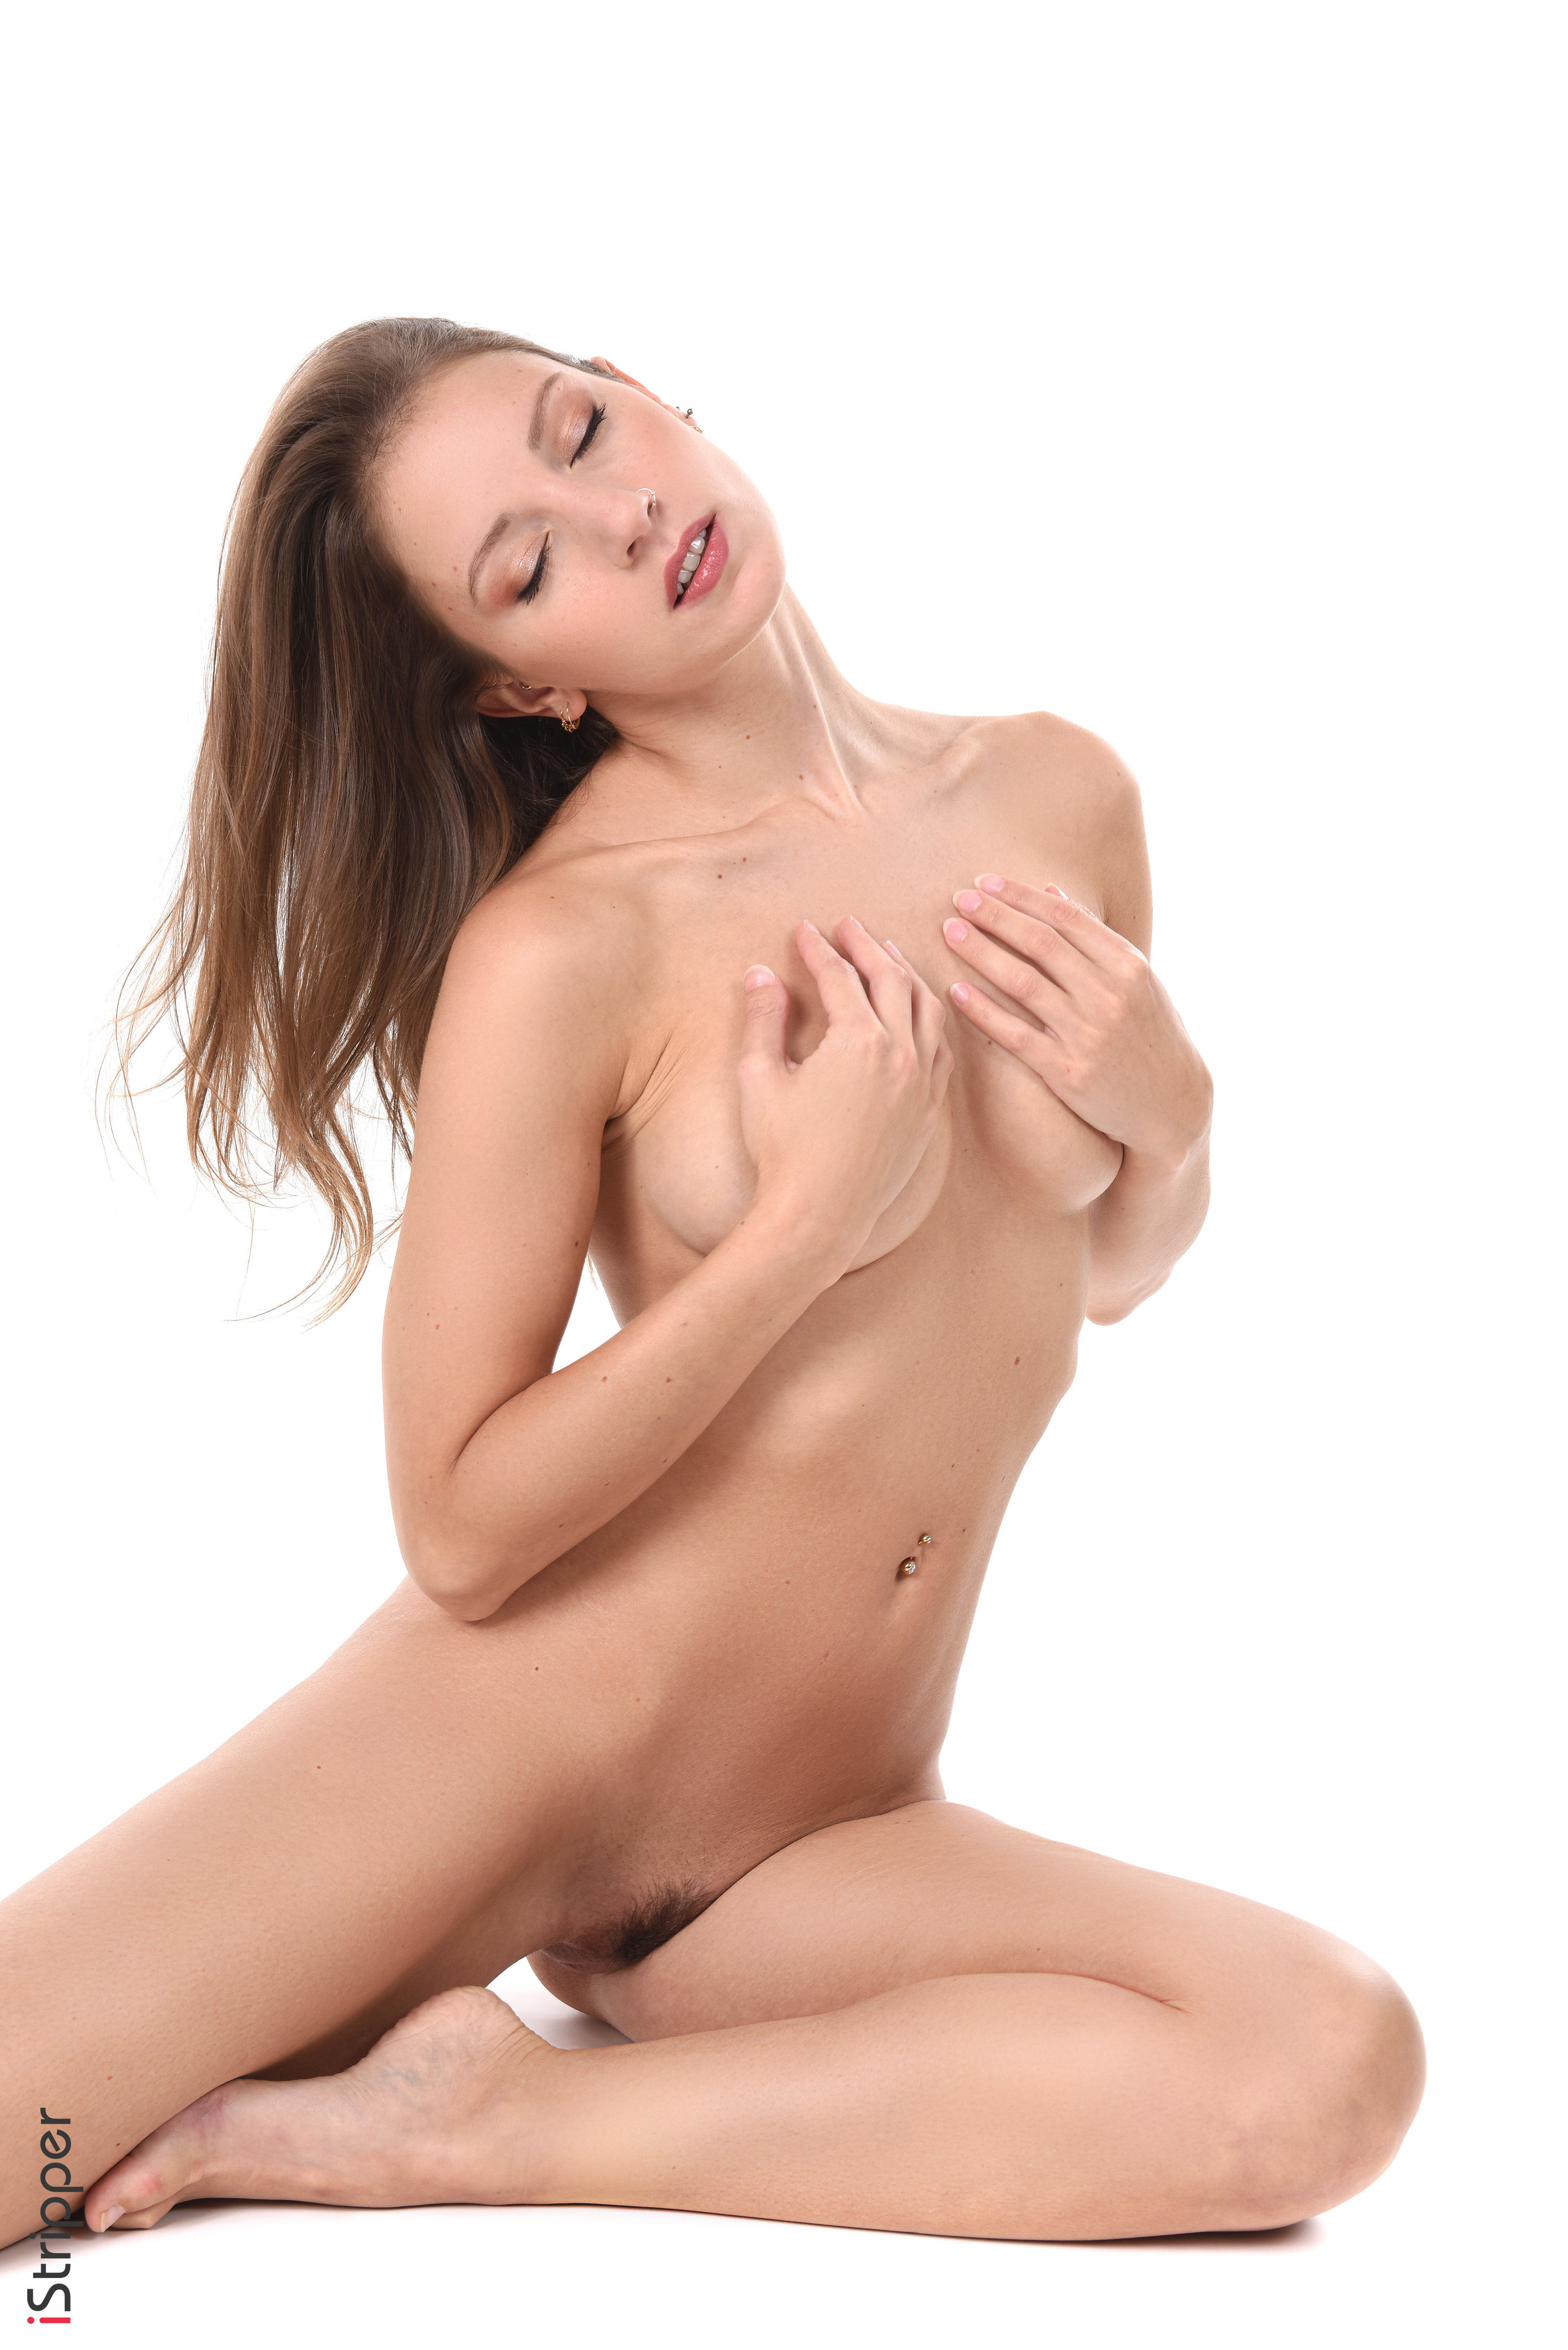 amber sym's slow and exceptionally sexy striptease